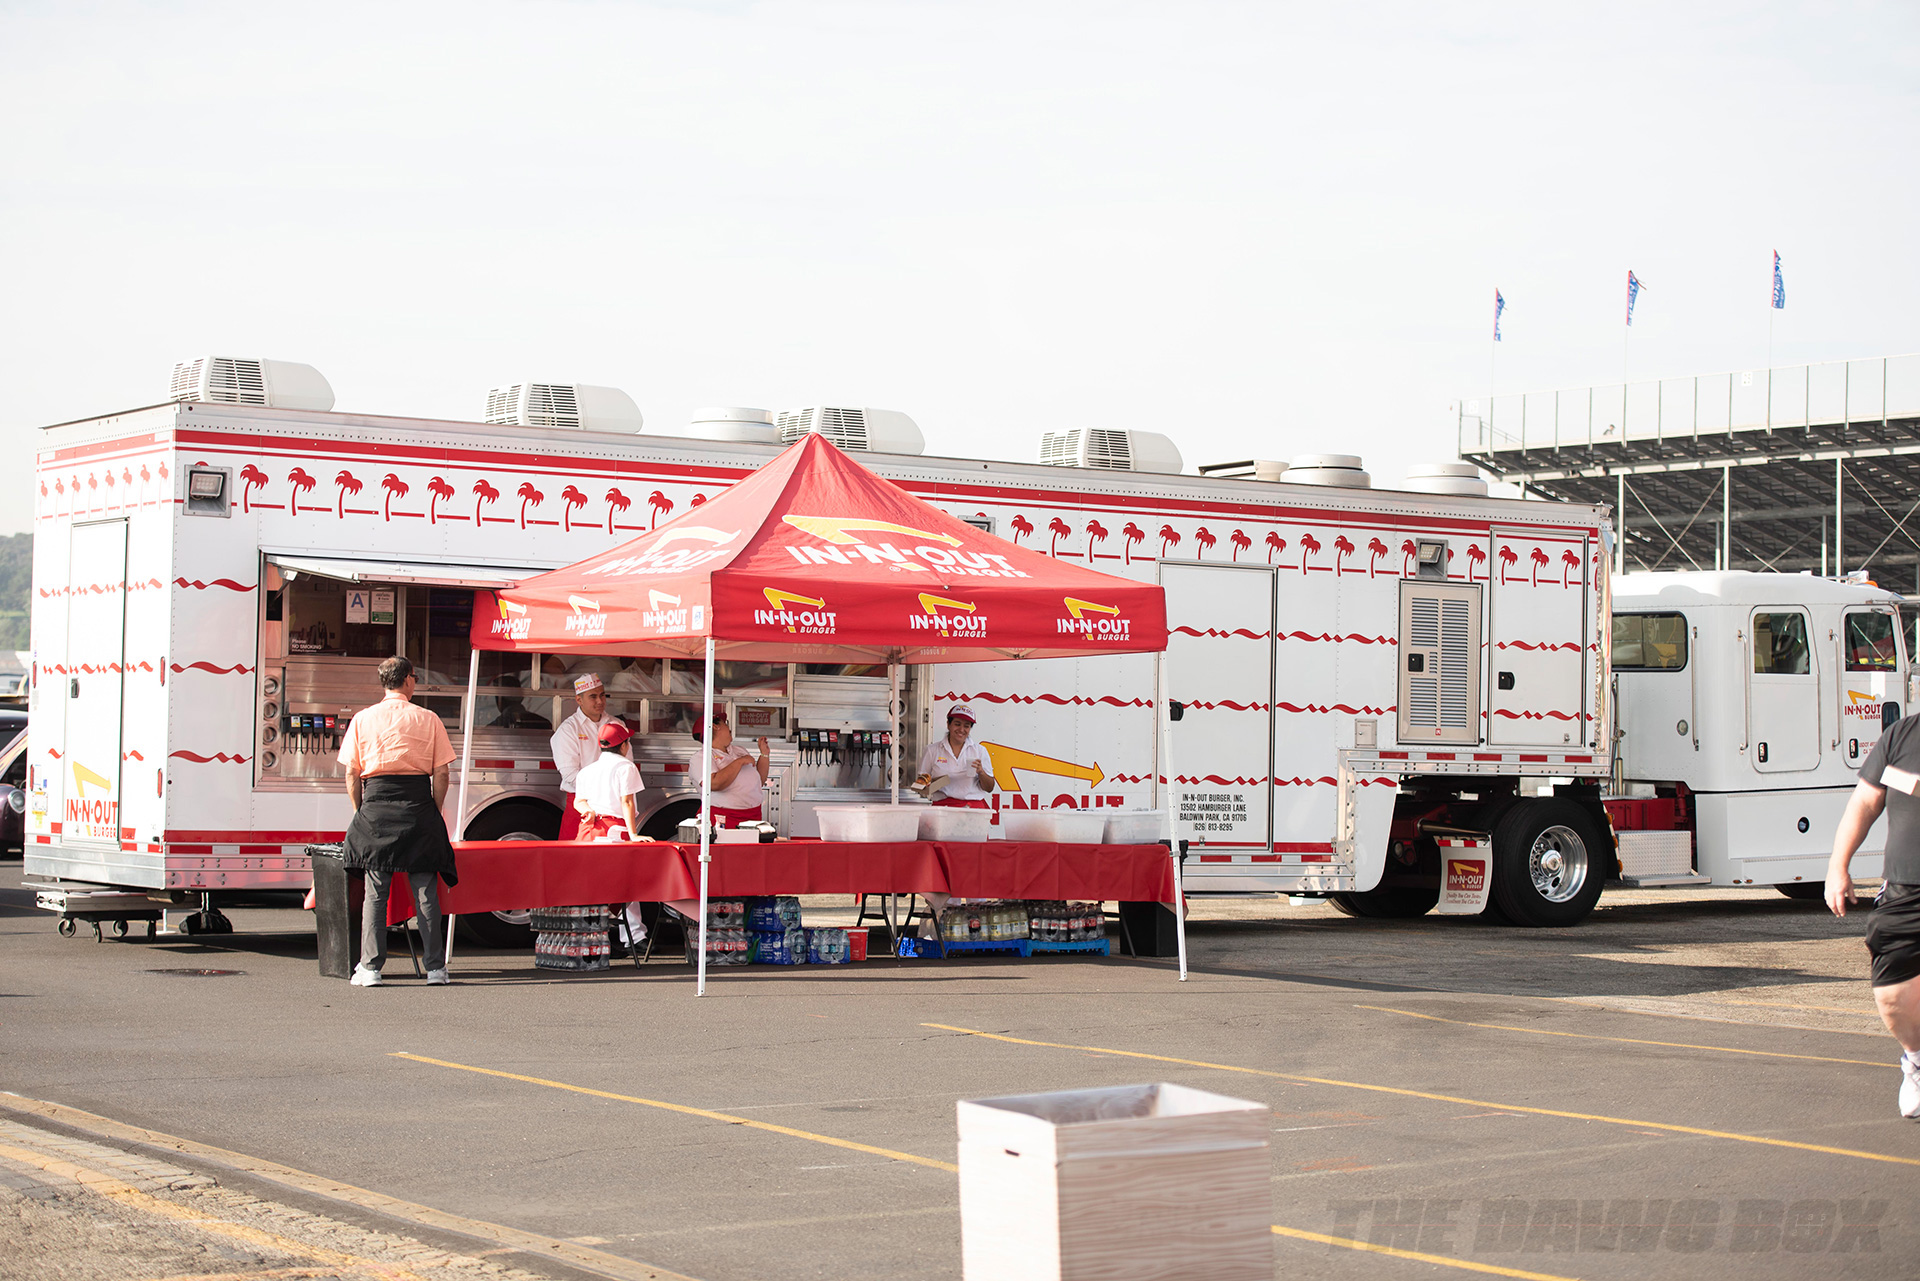 In-N-Out food trailer at the In-N-Out Hot Rod 70th Celebration